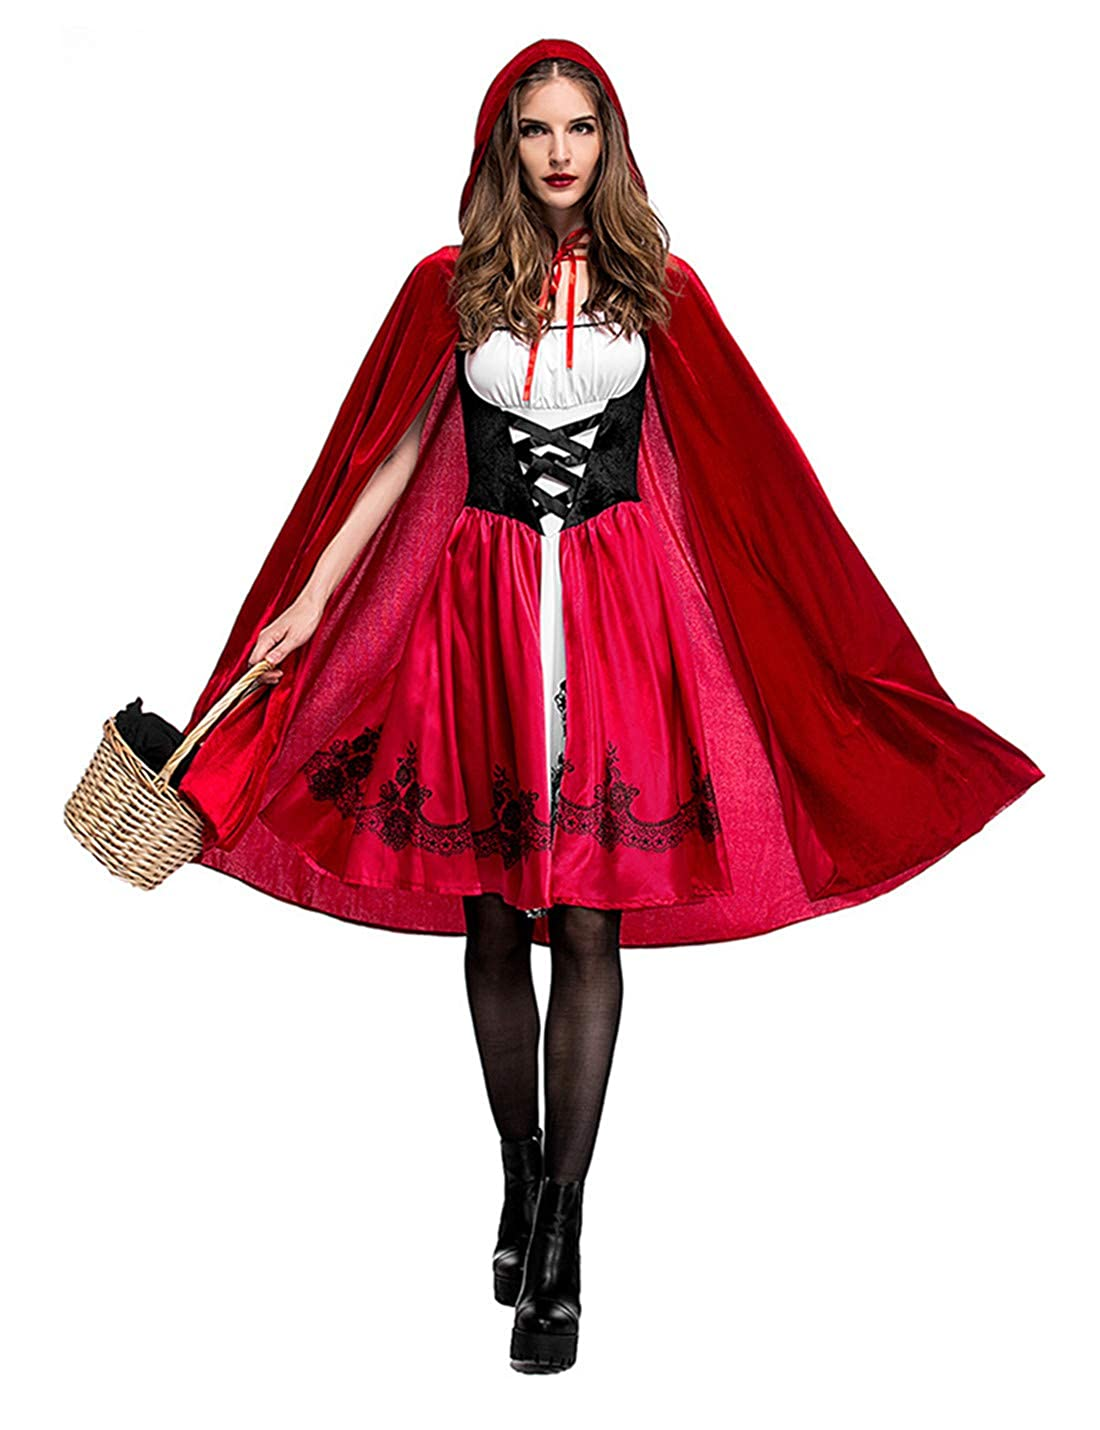 Flovey Women's Little Red Riding Hood Costume Halloween Cosplay Party Dress with Cape